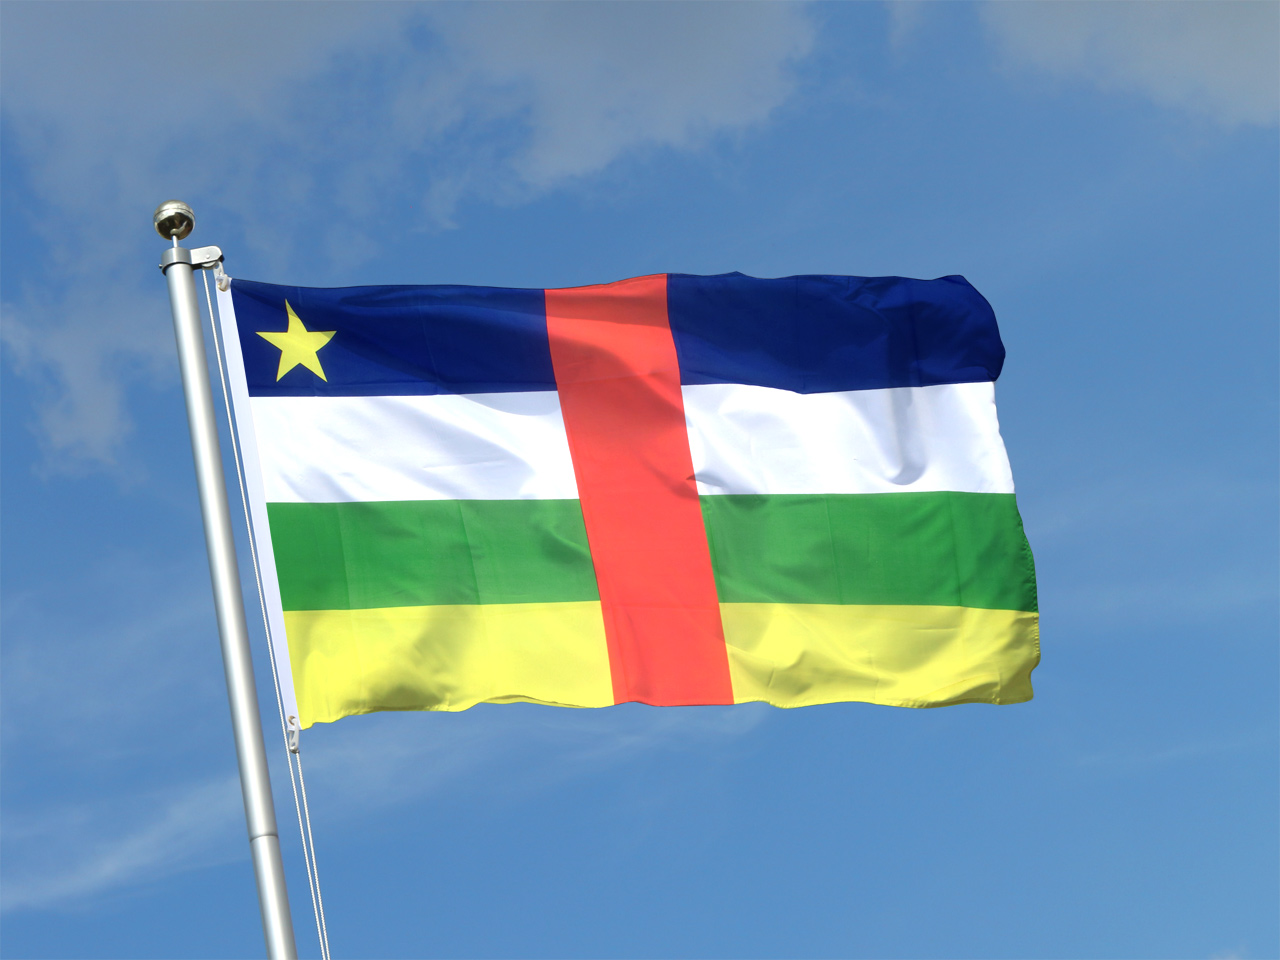 Buy Central African Republic Flag - 3x5 ft - Royal-Flags